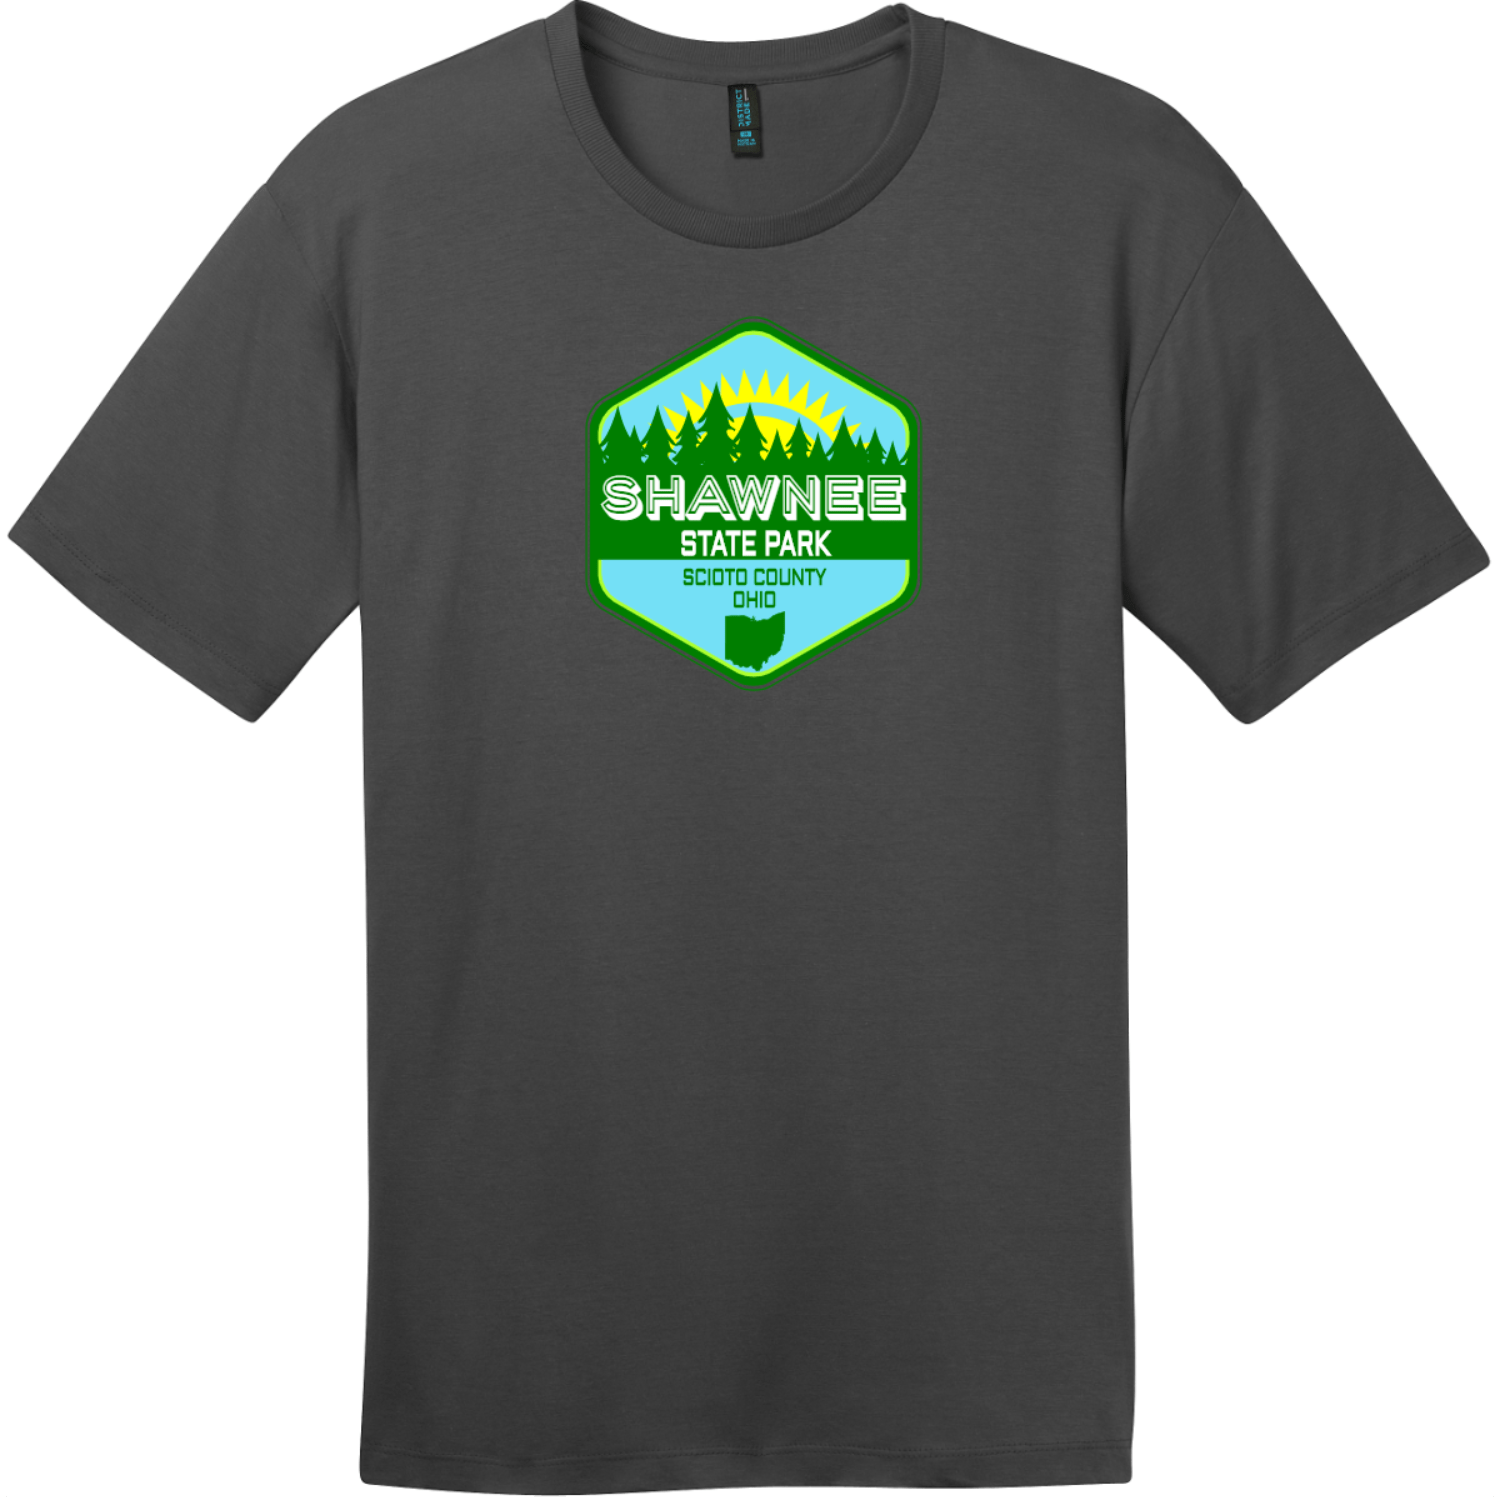 Shawnee State Park Ohio T-Shirt Charcoal District Perfect Weight Tee DT104